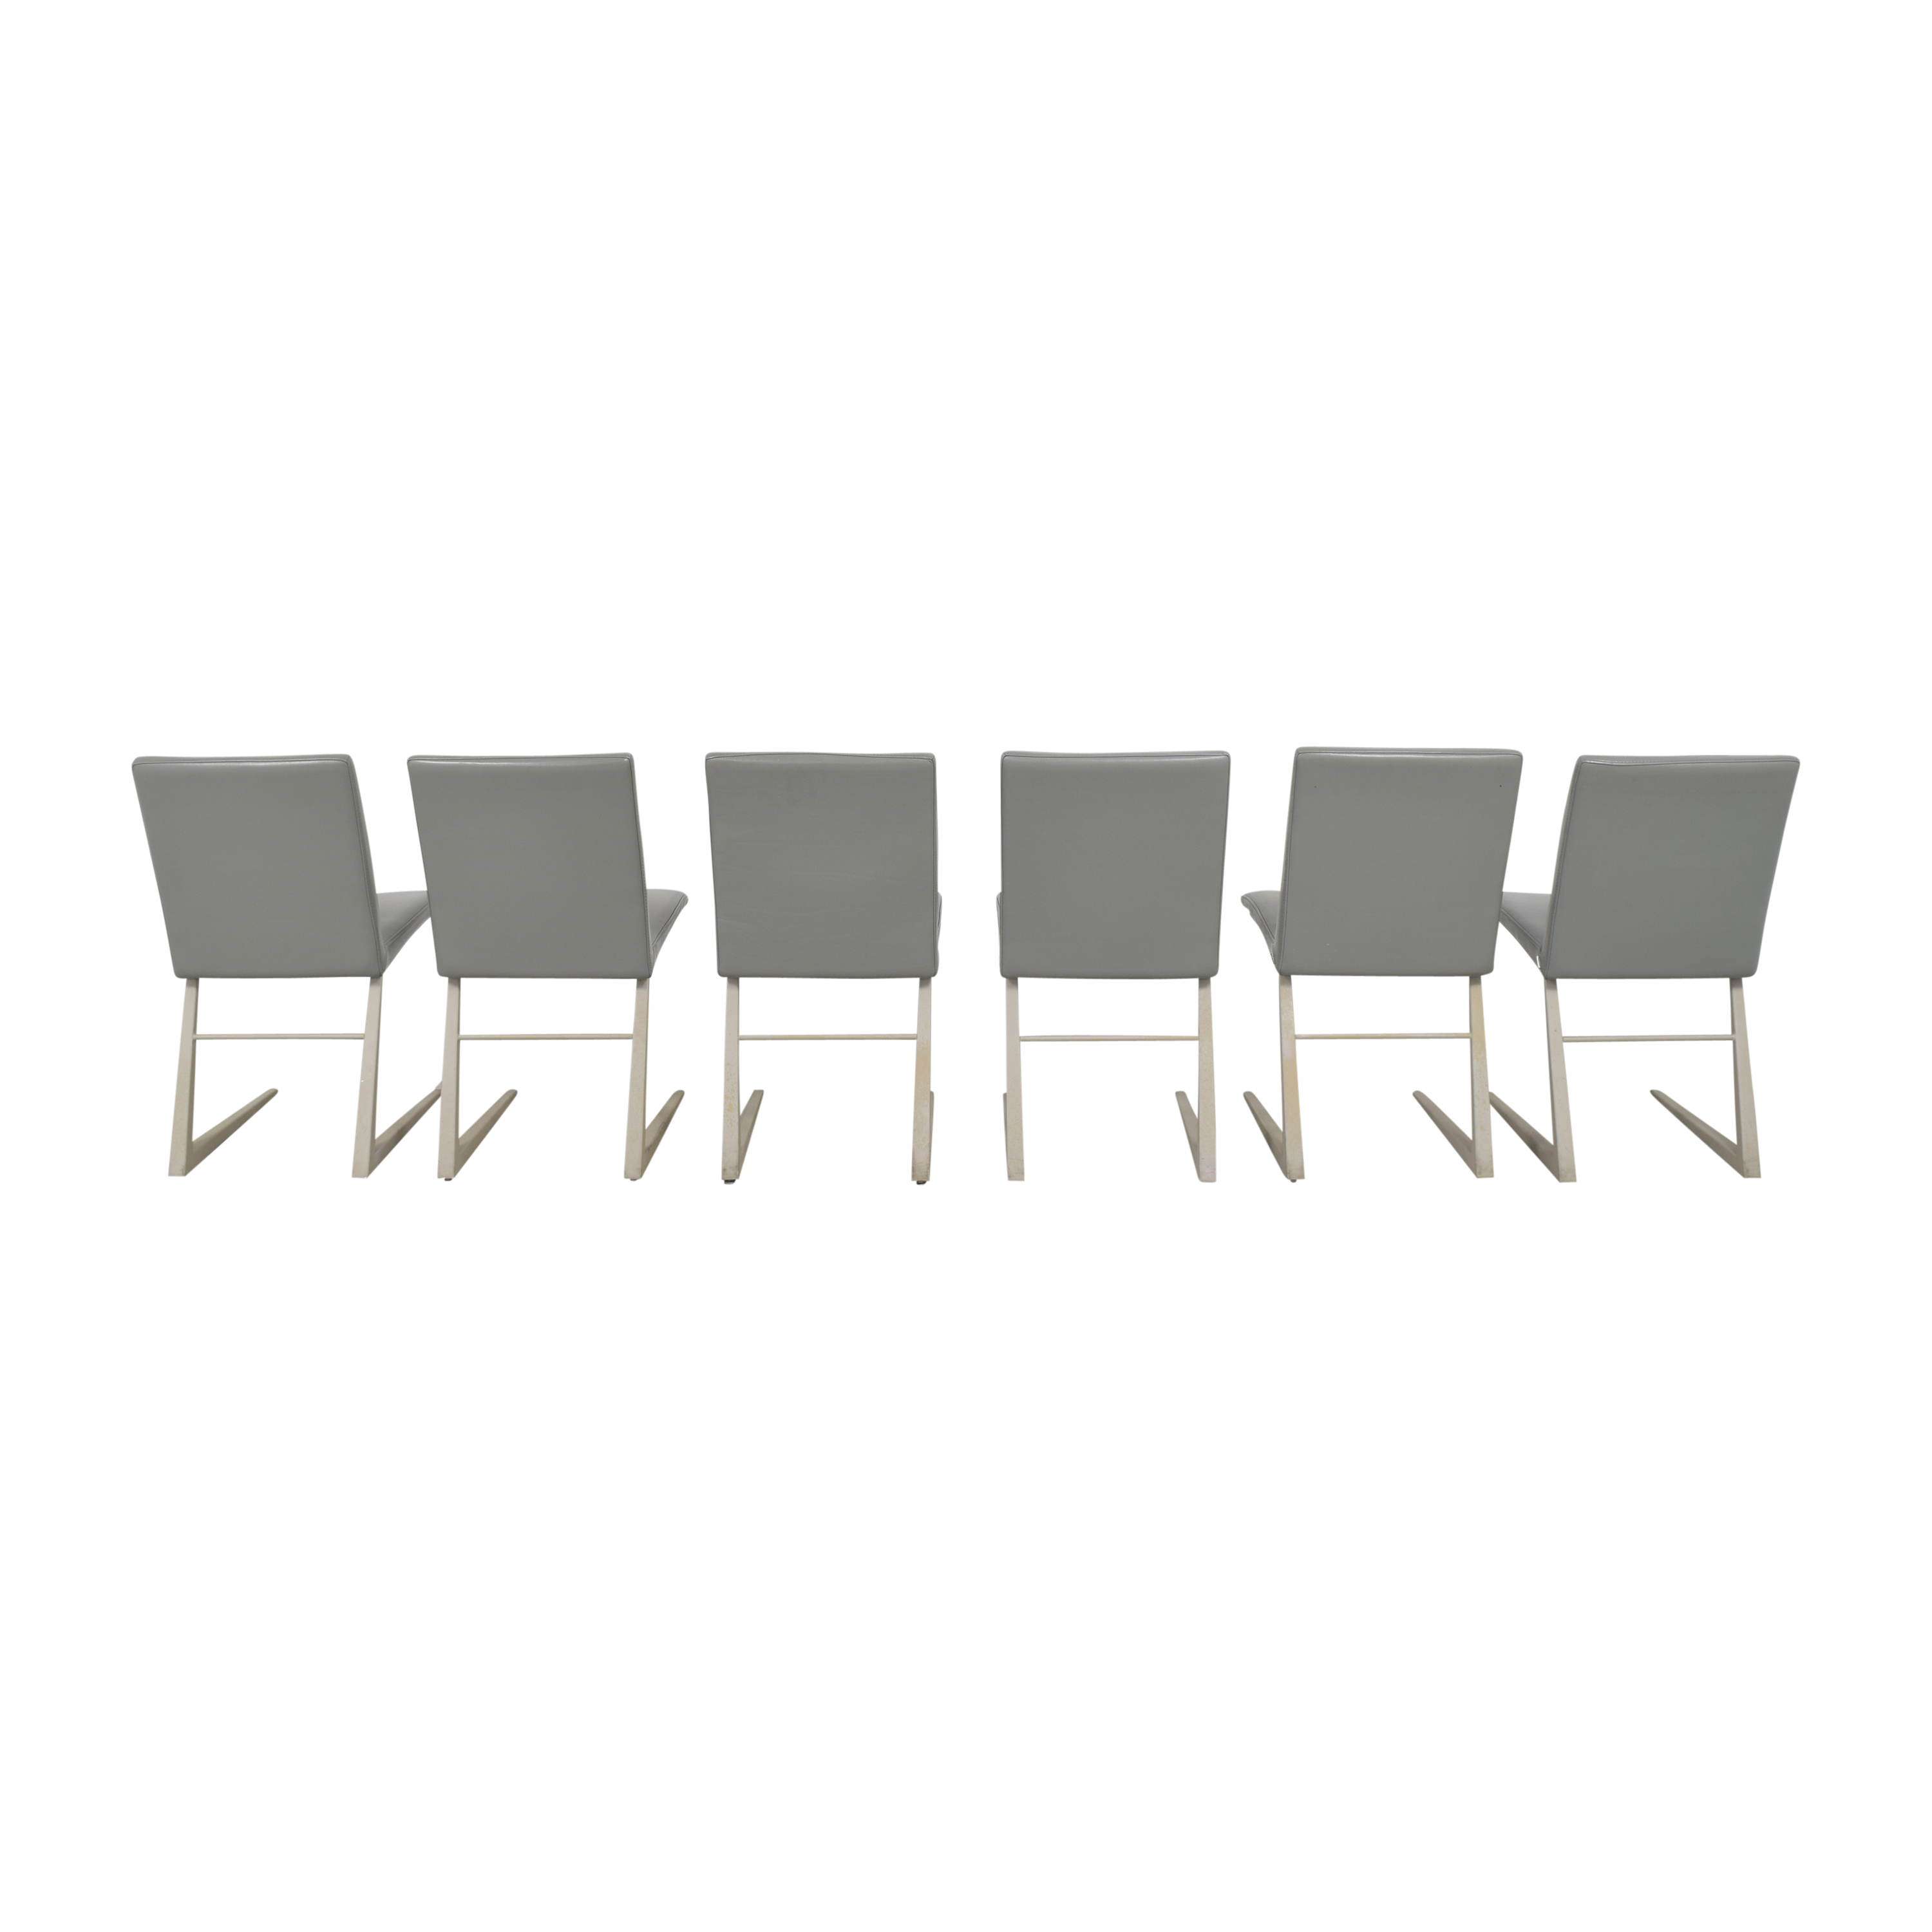 BoConcept BoConcept Mariposa Dining Chairs Dining Chairs